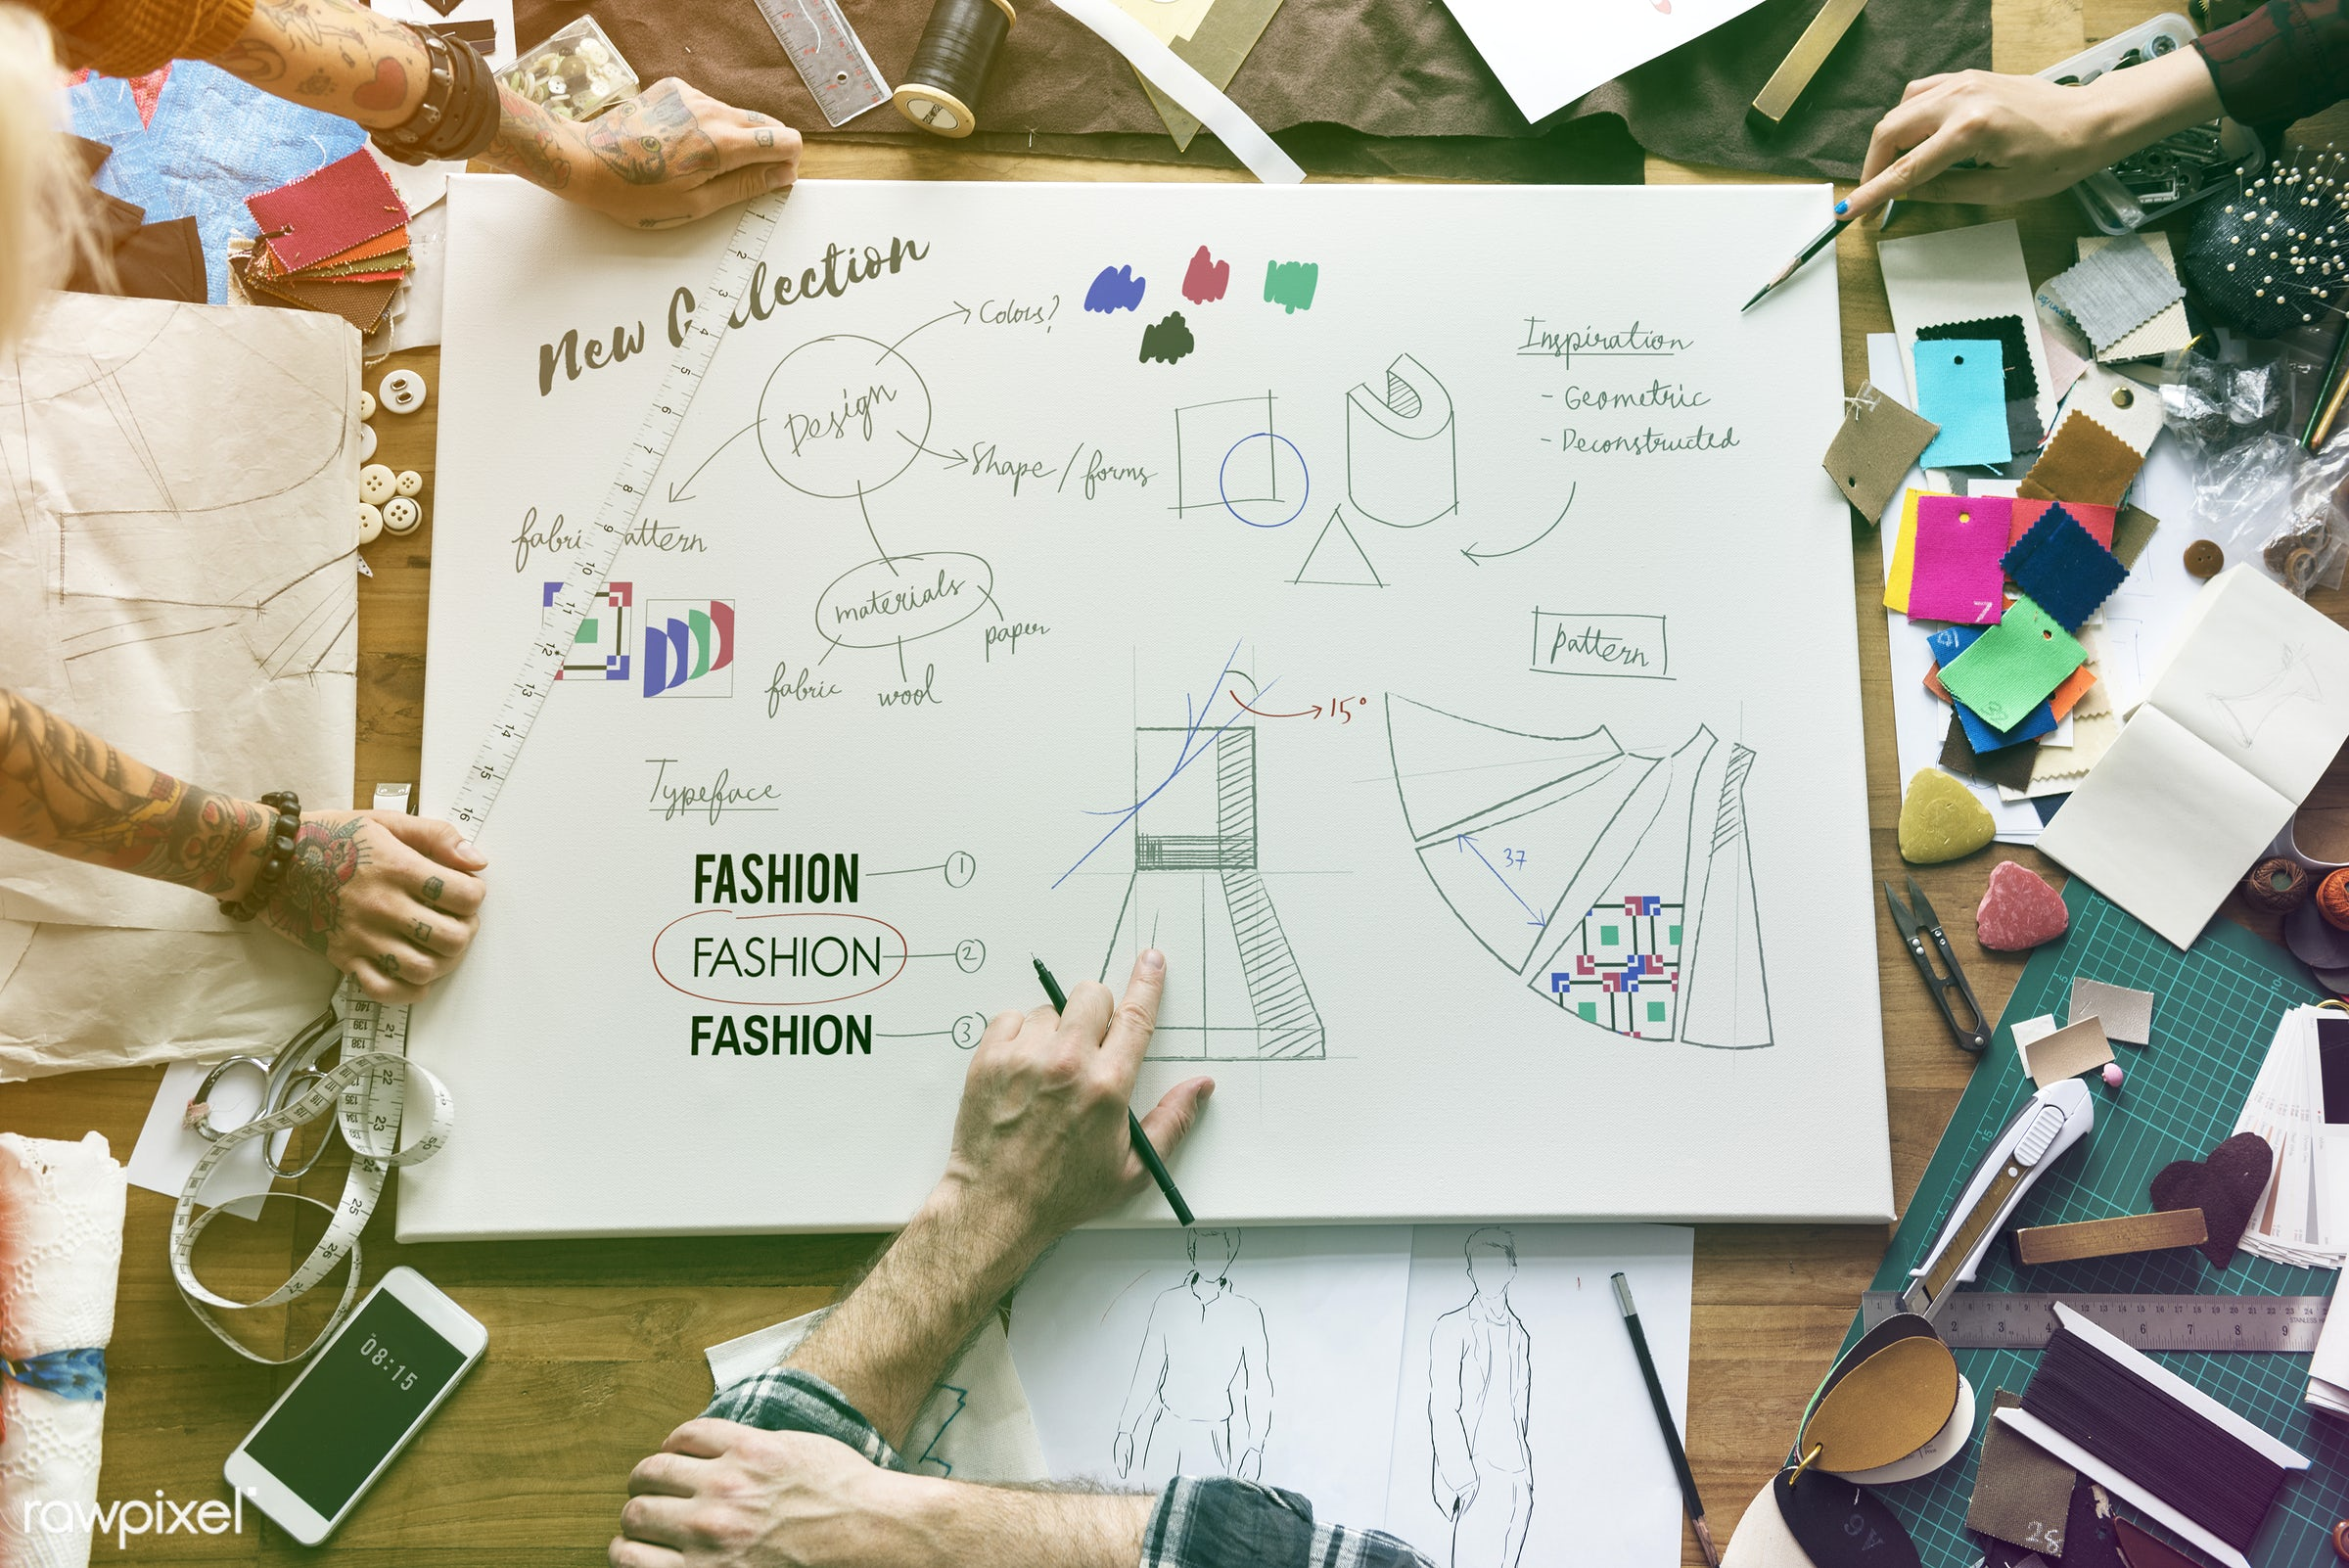 manufacturing, faded, design industry, vibrant, decor, draw, designers, light, shirt, work, workshop, fashion designing,...